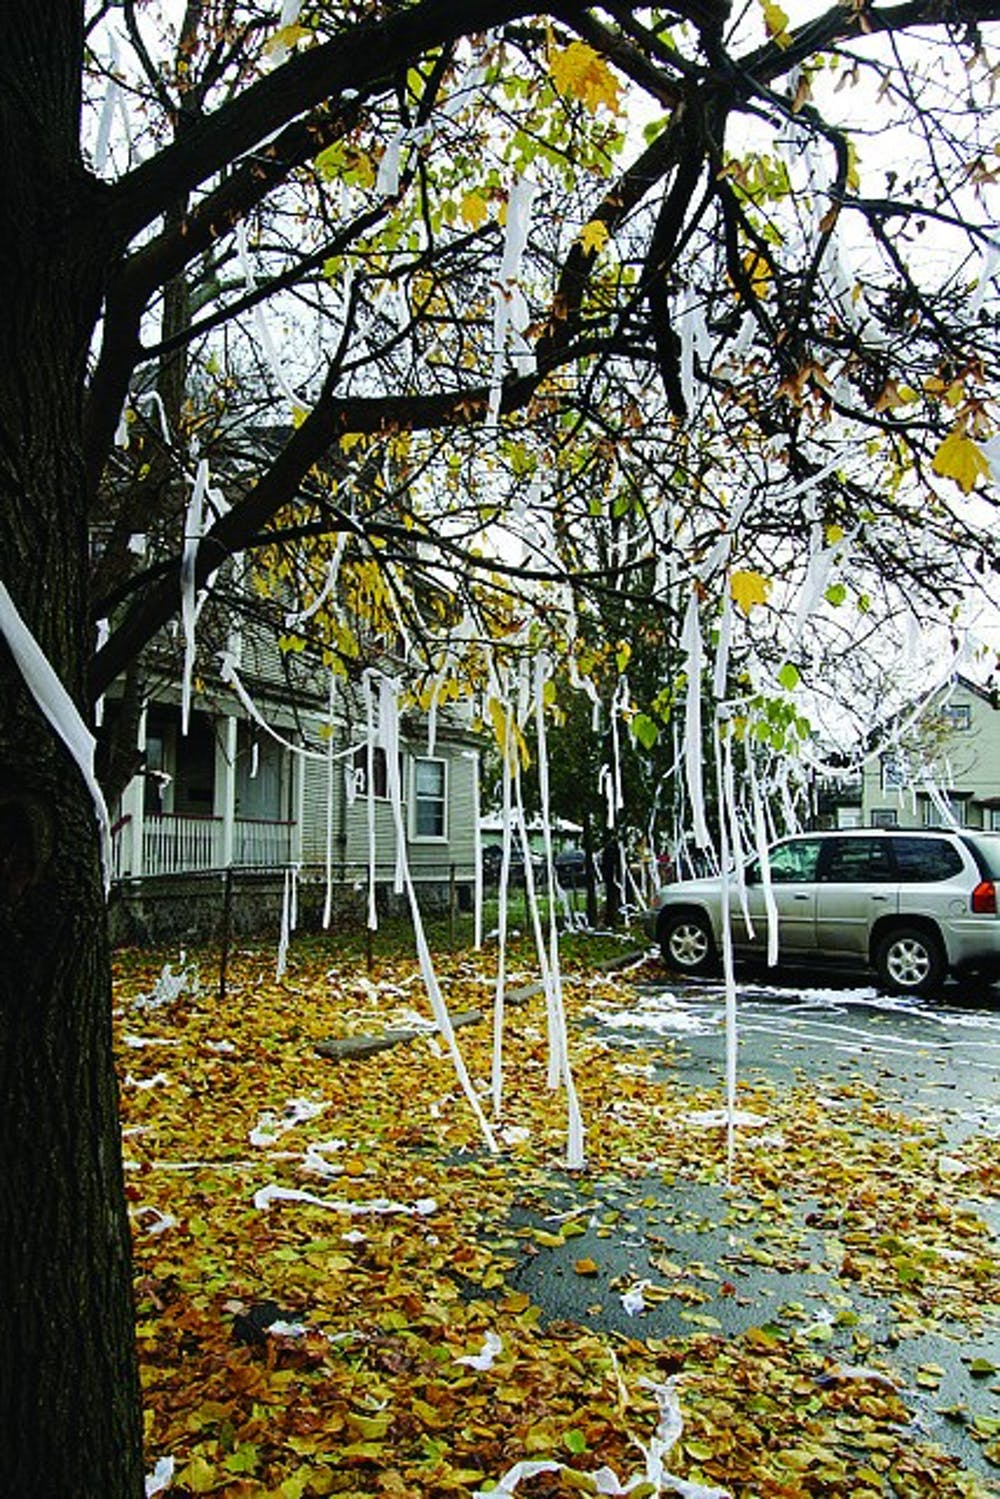 Traditional mischief night is not mean